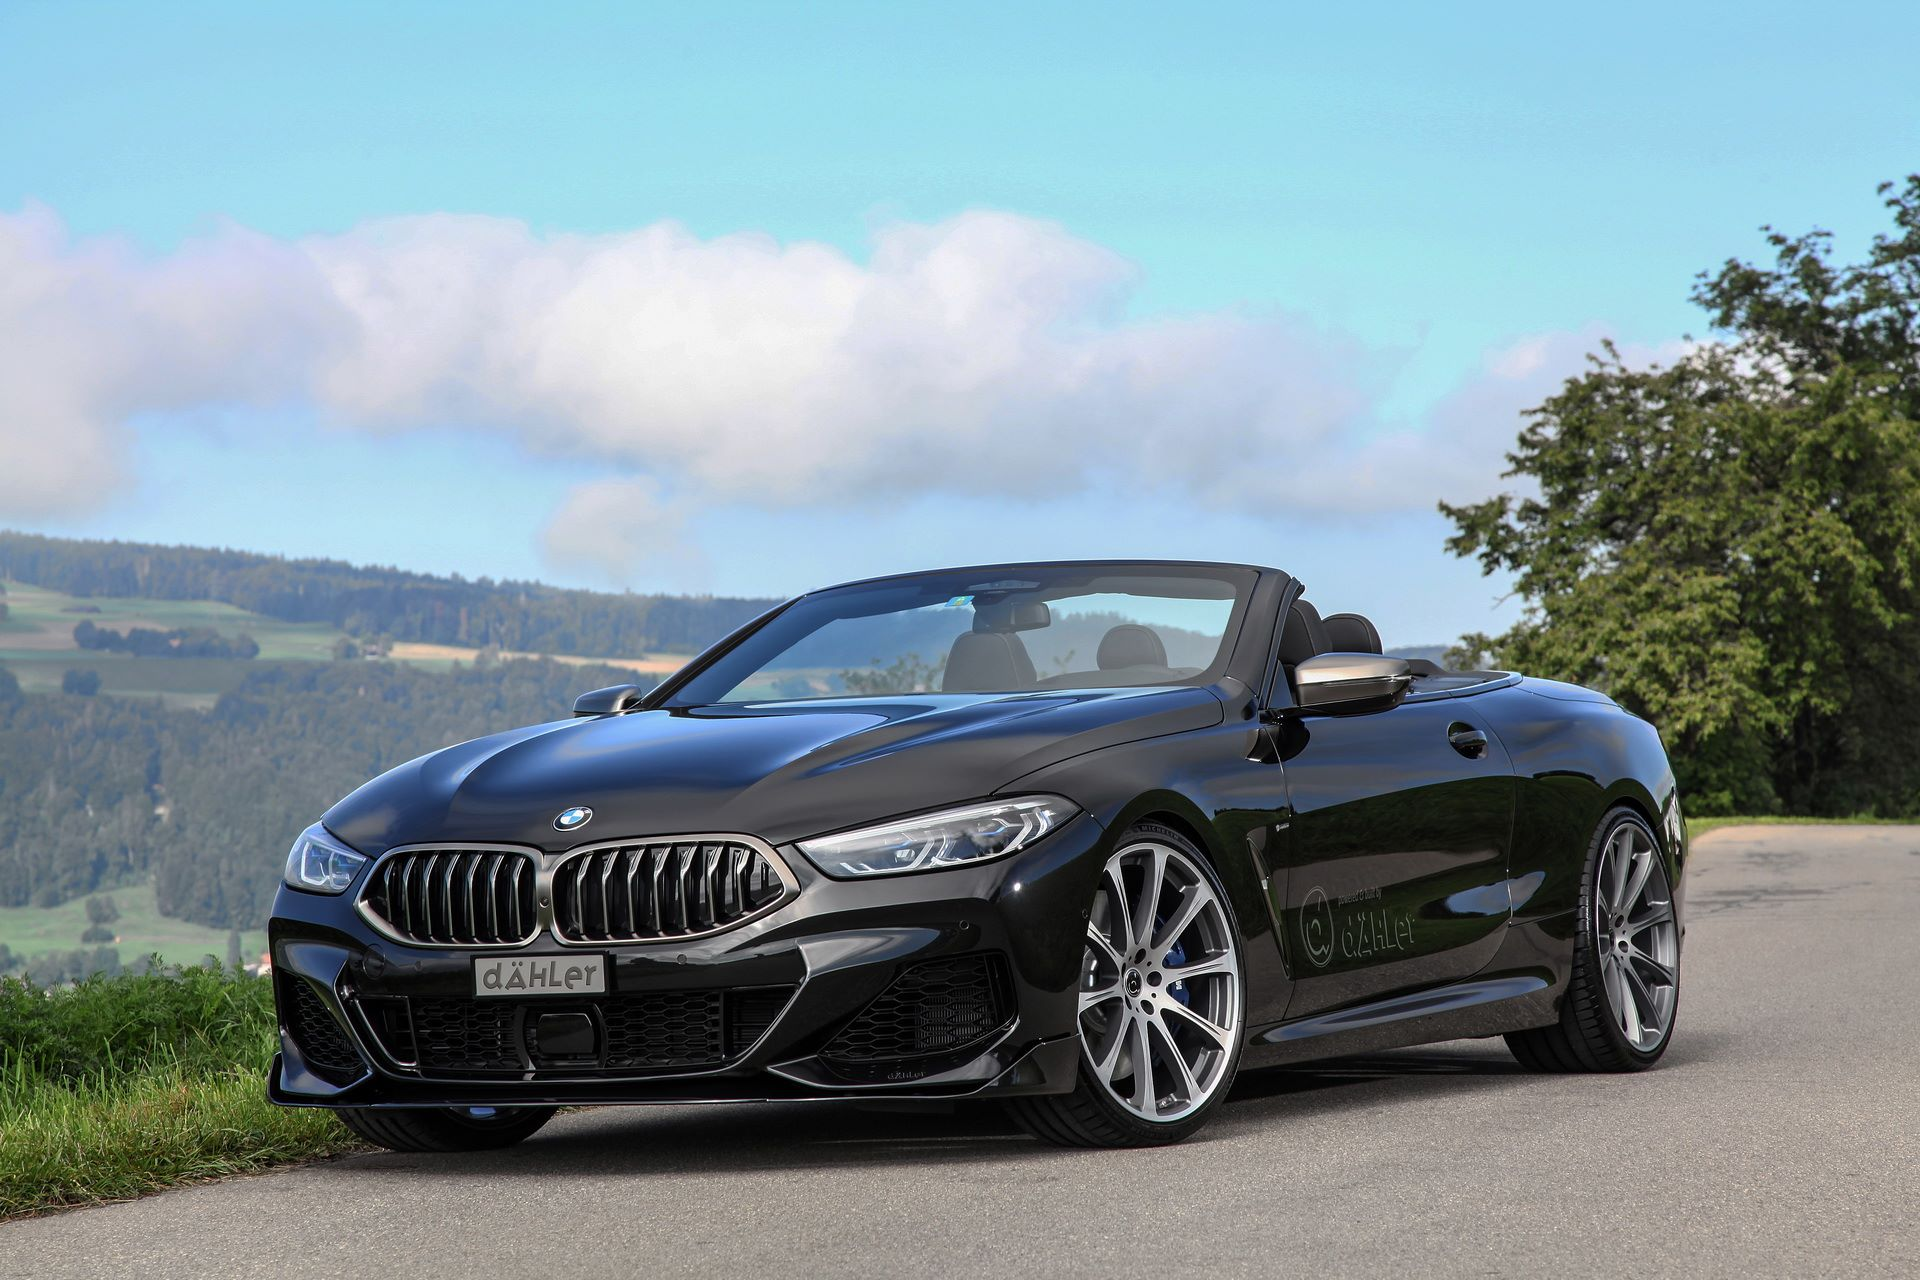 BMW-M850i-convertible-by-Dahler-1